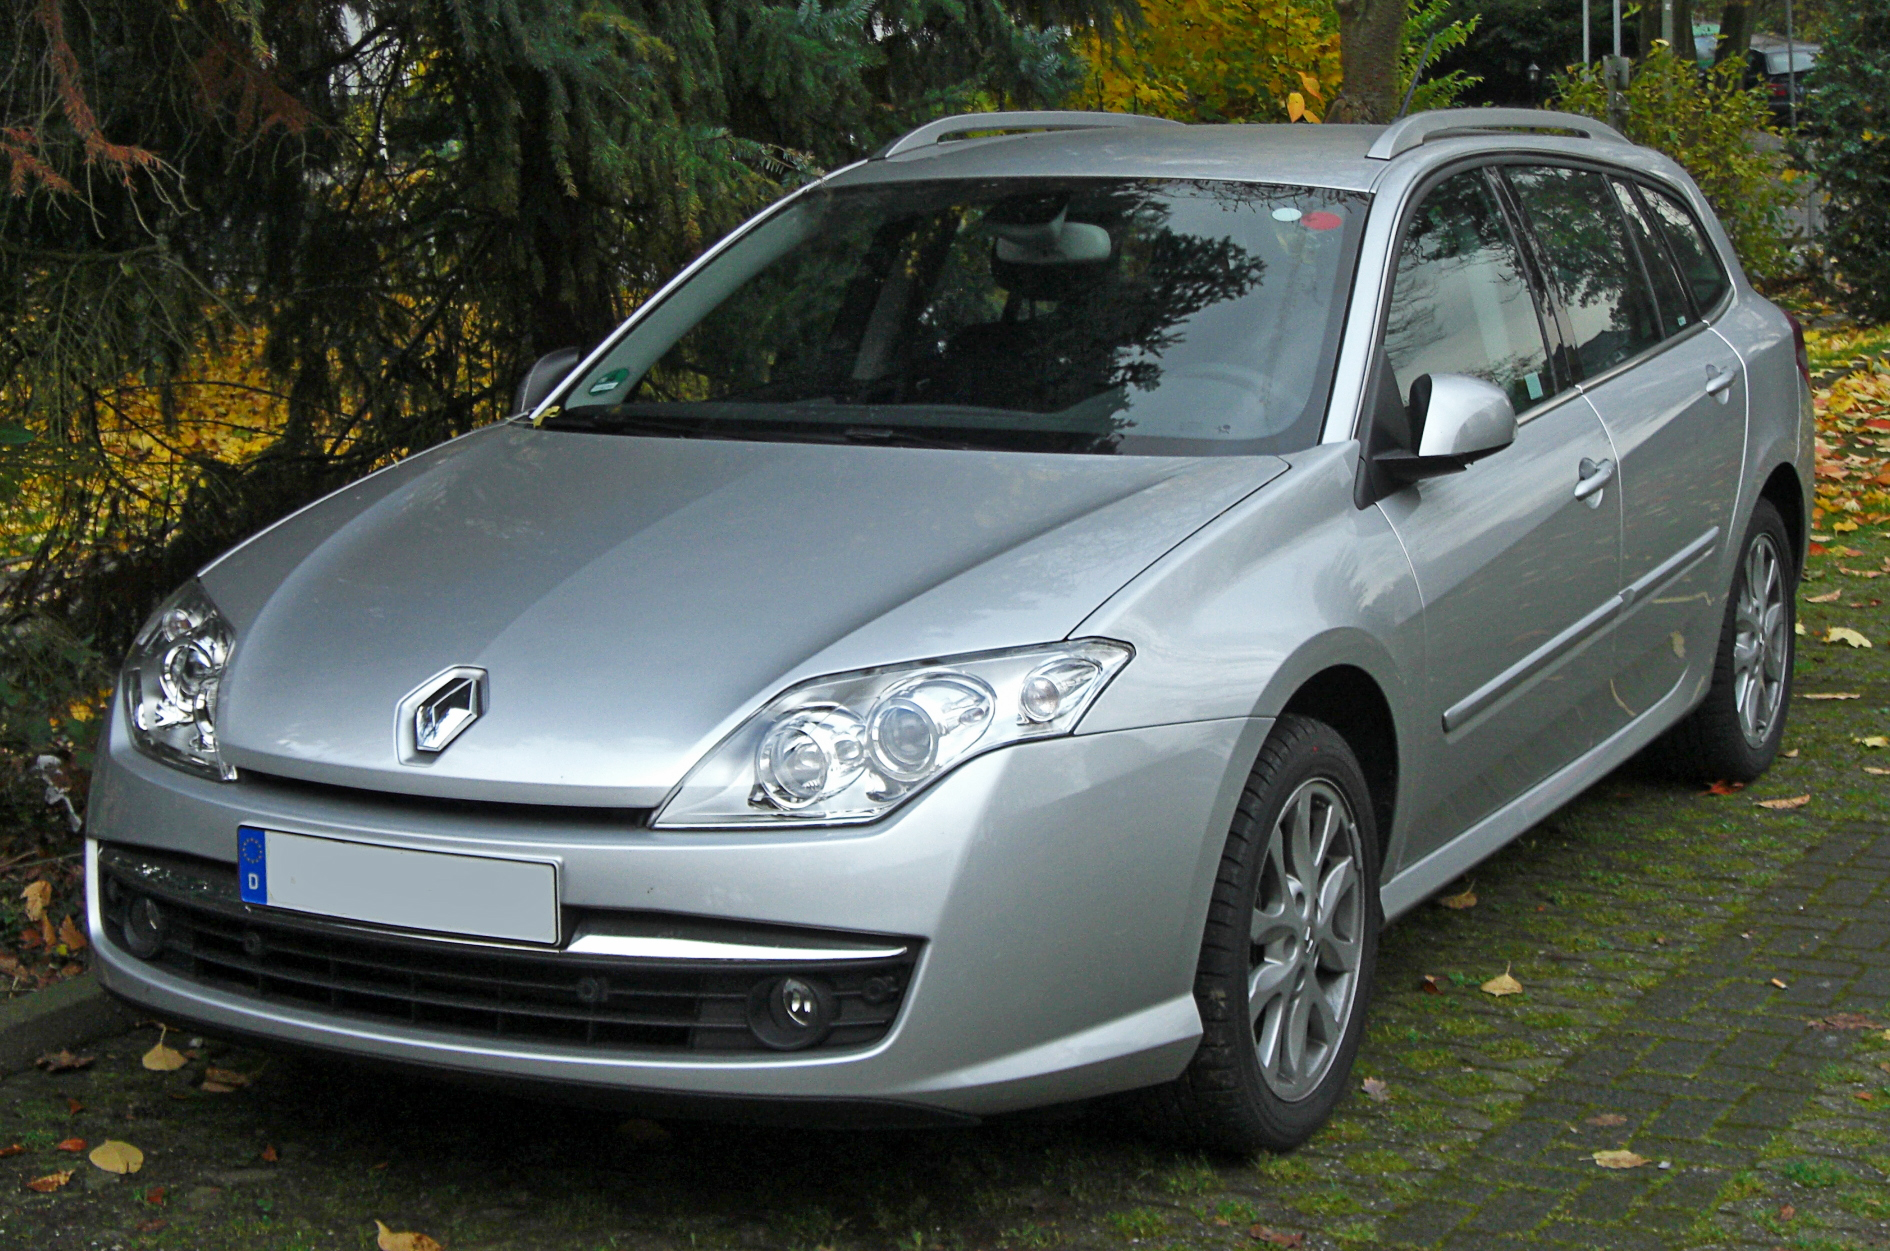 file renault laguna iii grandtour seit 2007 front mj jpg. Black Bedroom Furniture Sets. Home Design Ideas